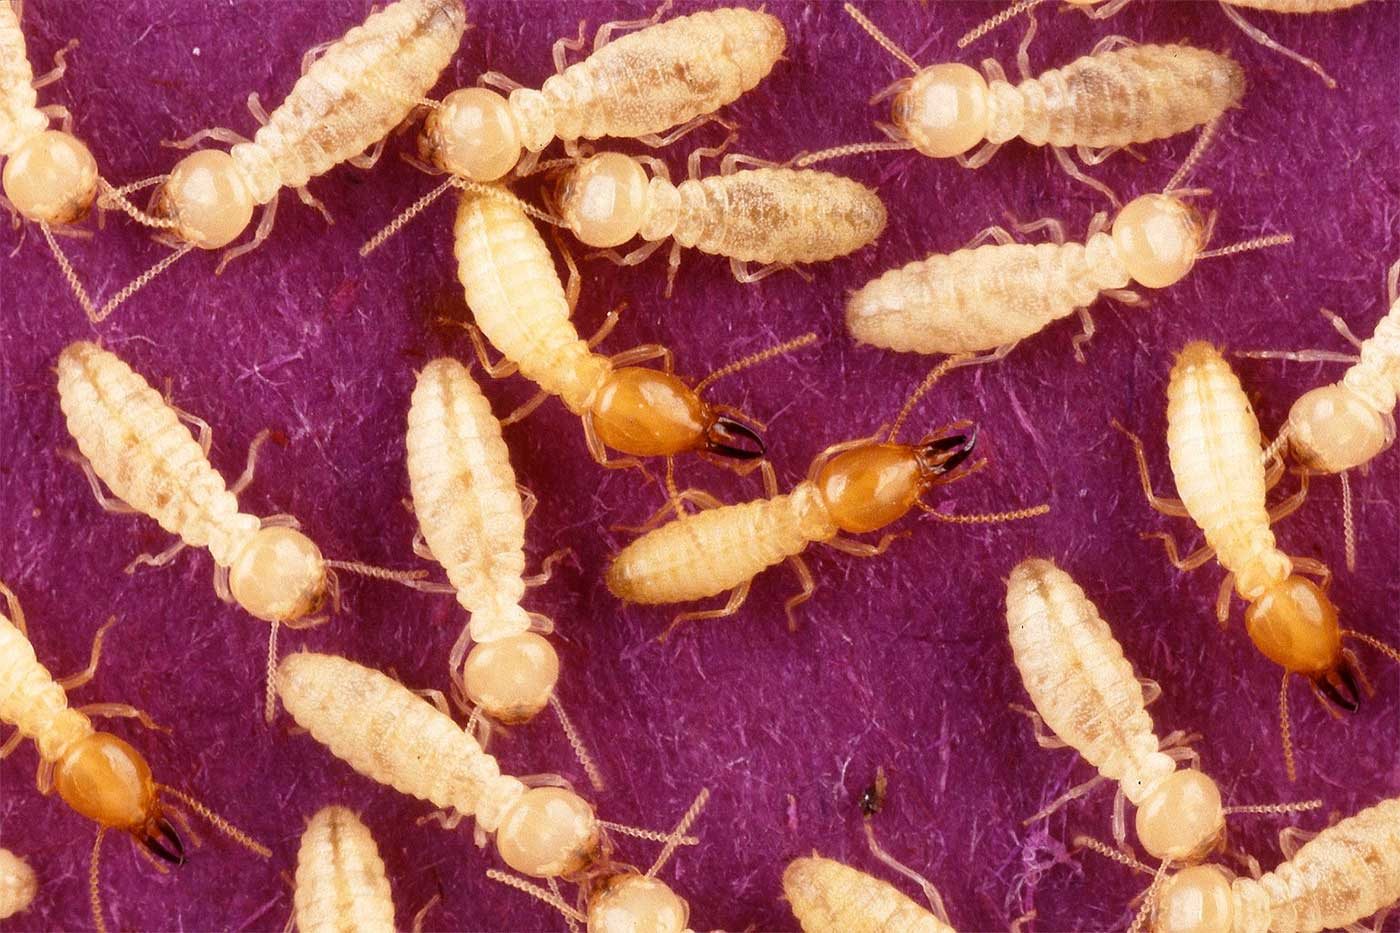 Termites Coptotermes - Photo Scott Bauer Public-domain